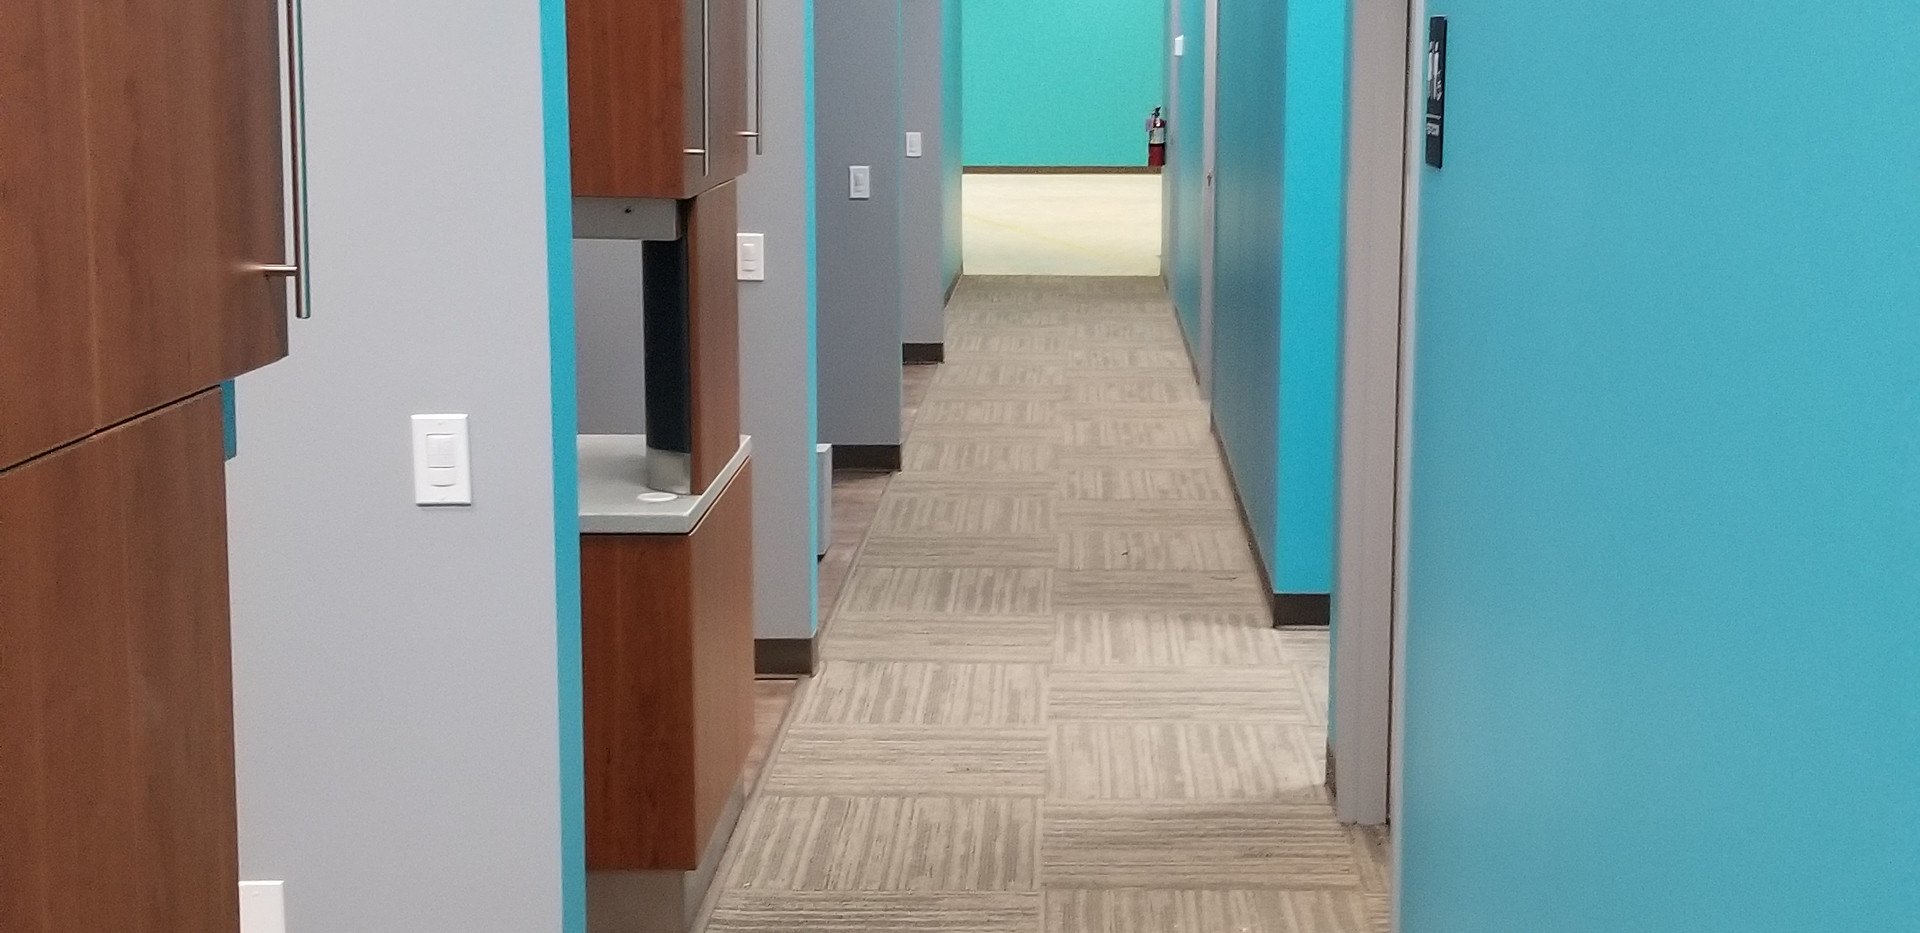 Hallway that Leds to Dental Rooms - Buildout Pros